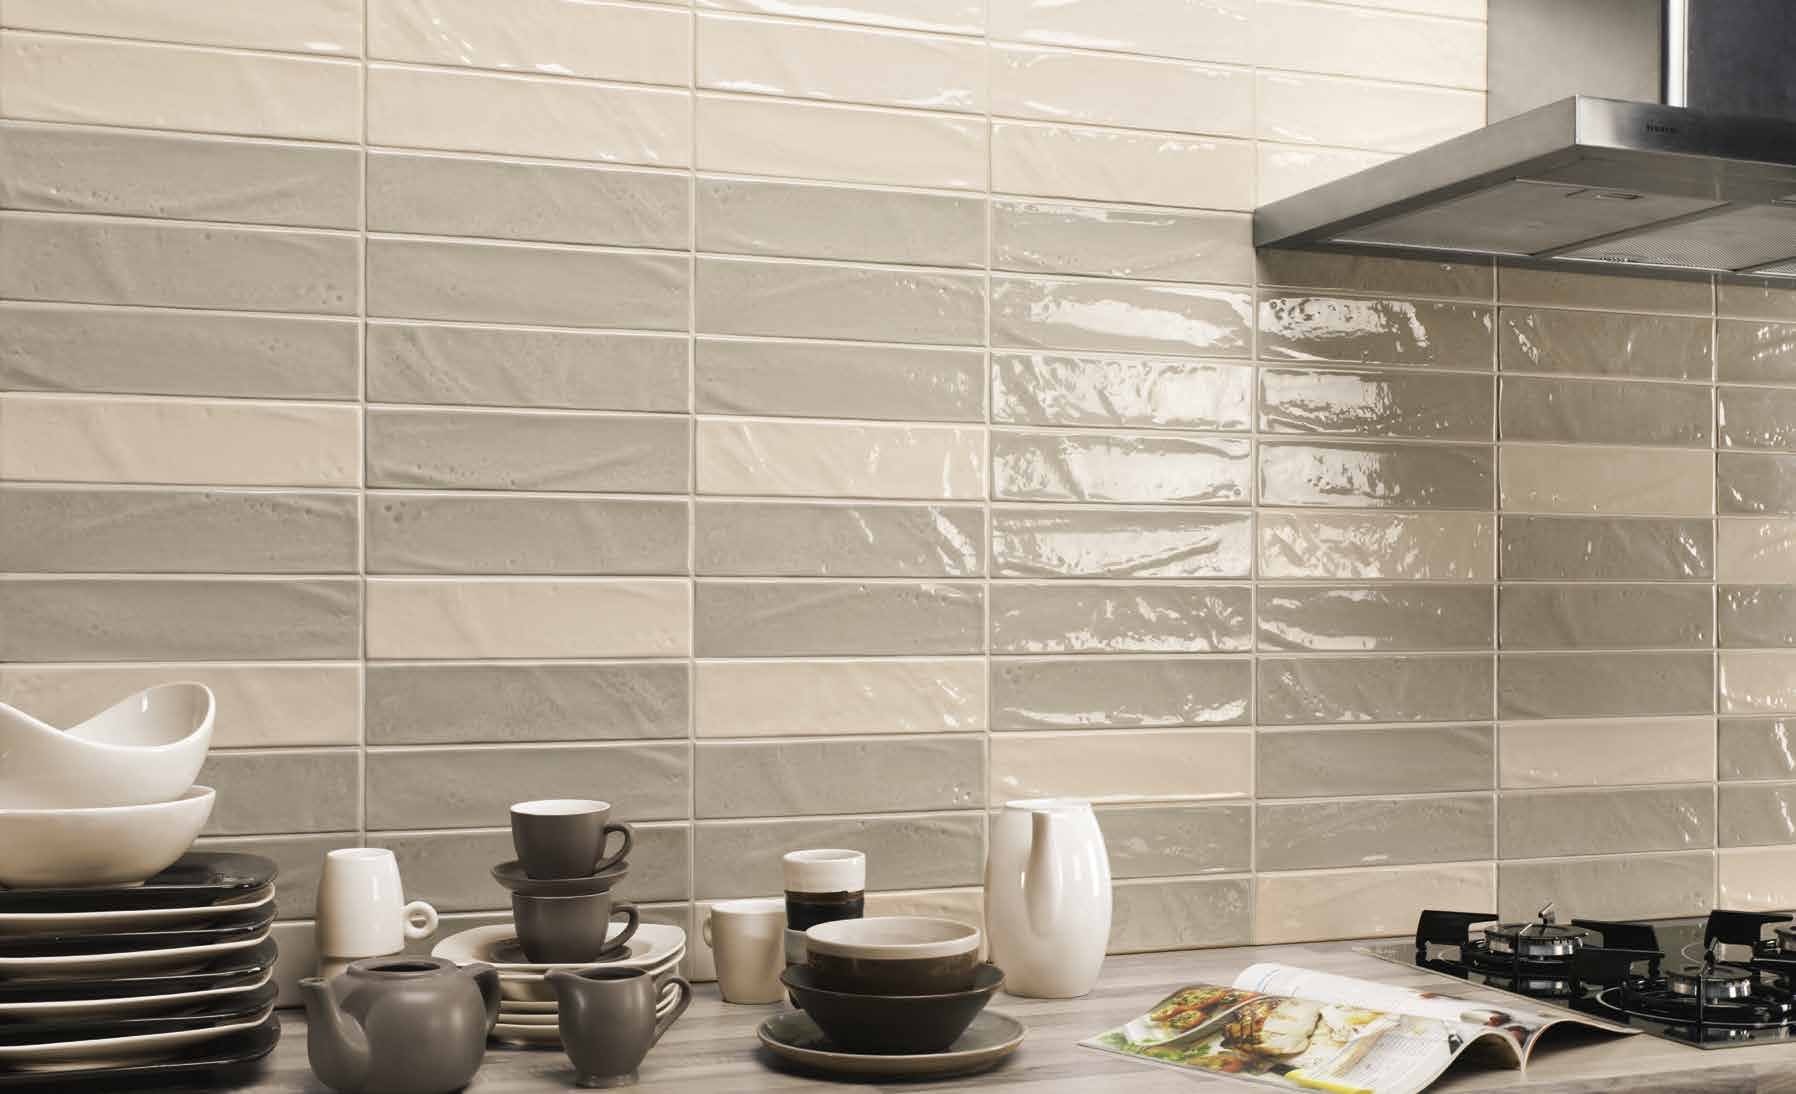 Adding New Tile Collections Soci